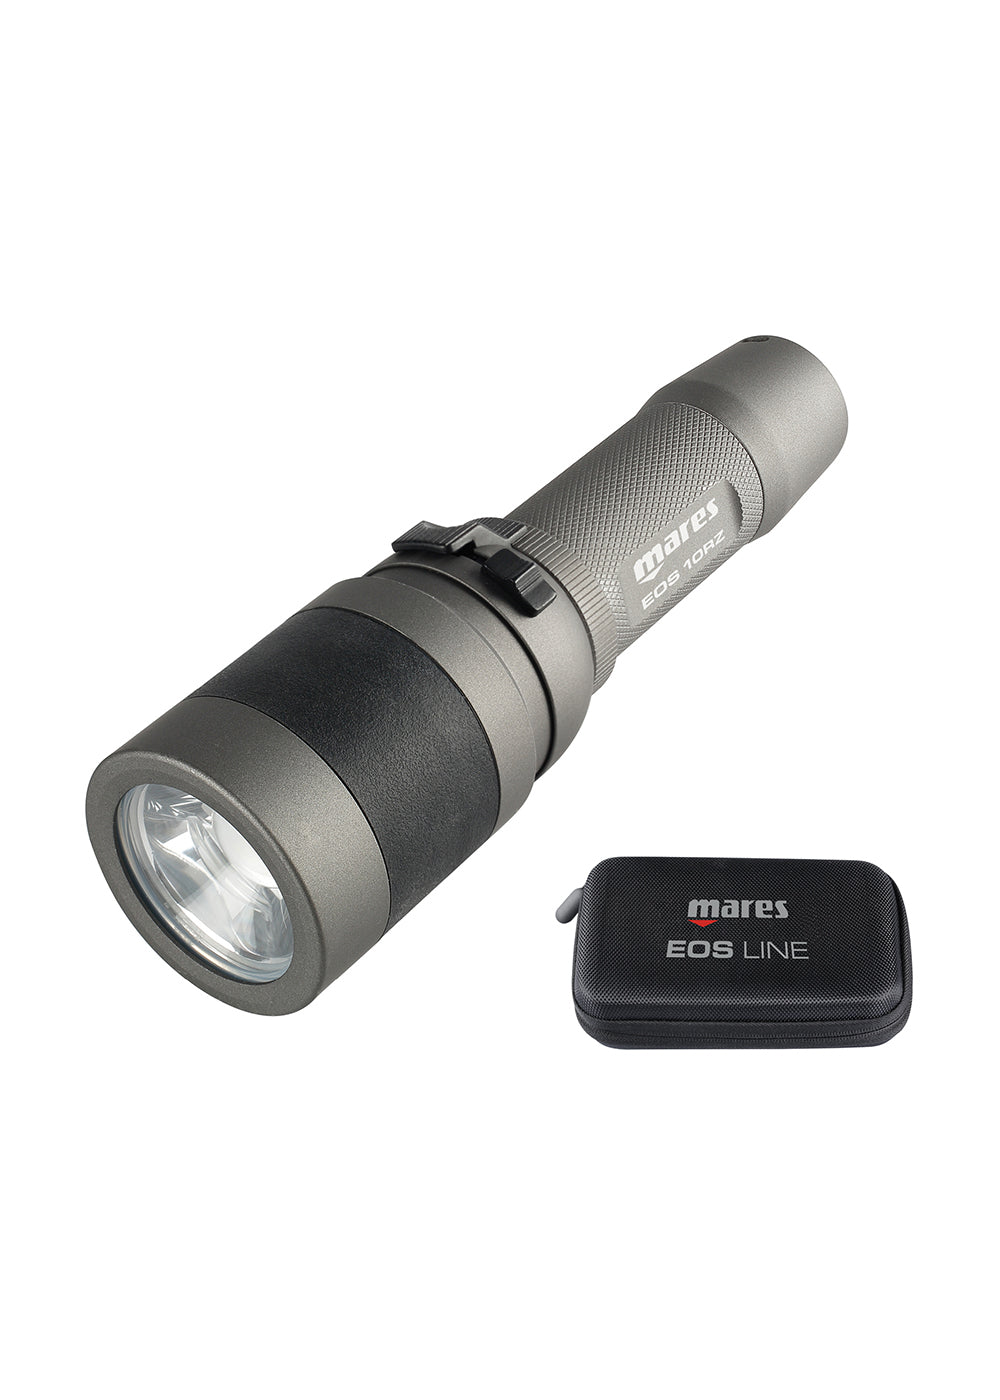 Mares EOS 10rz Torch - With Carrycase